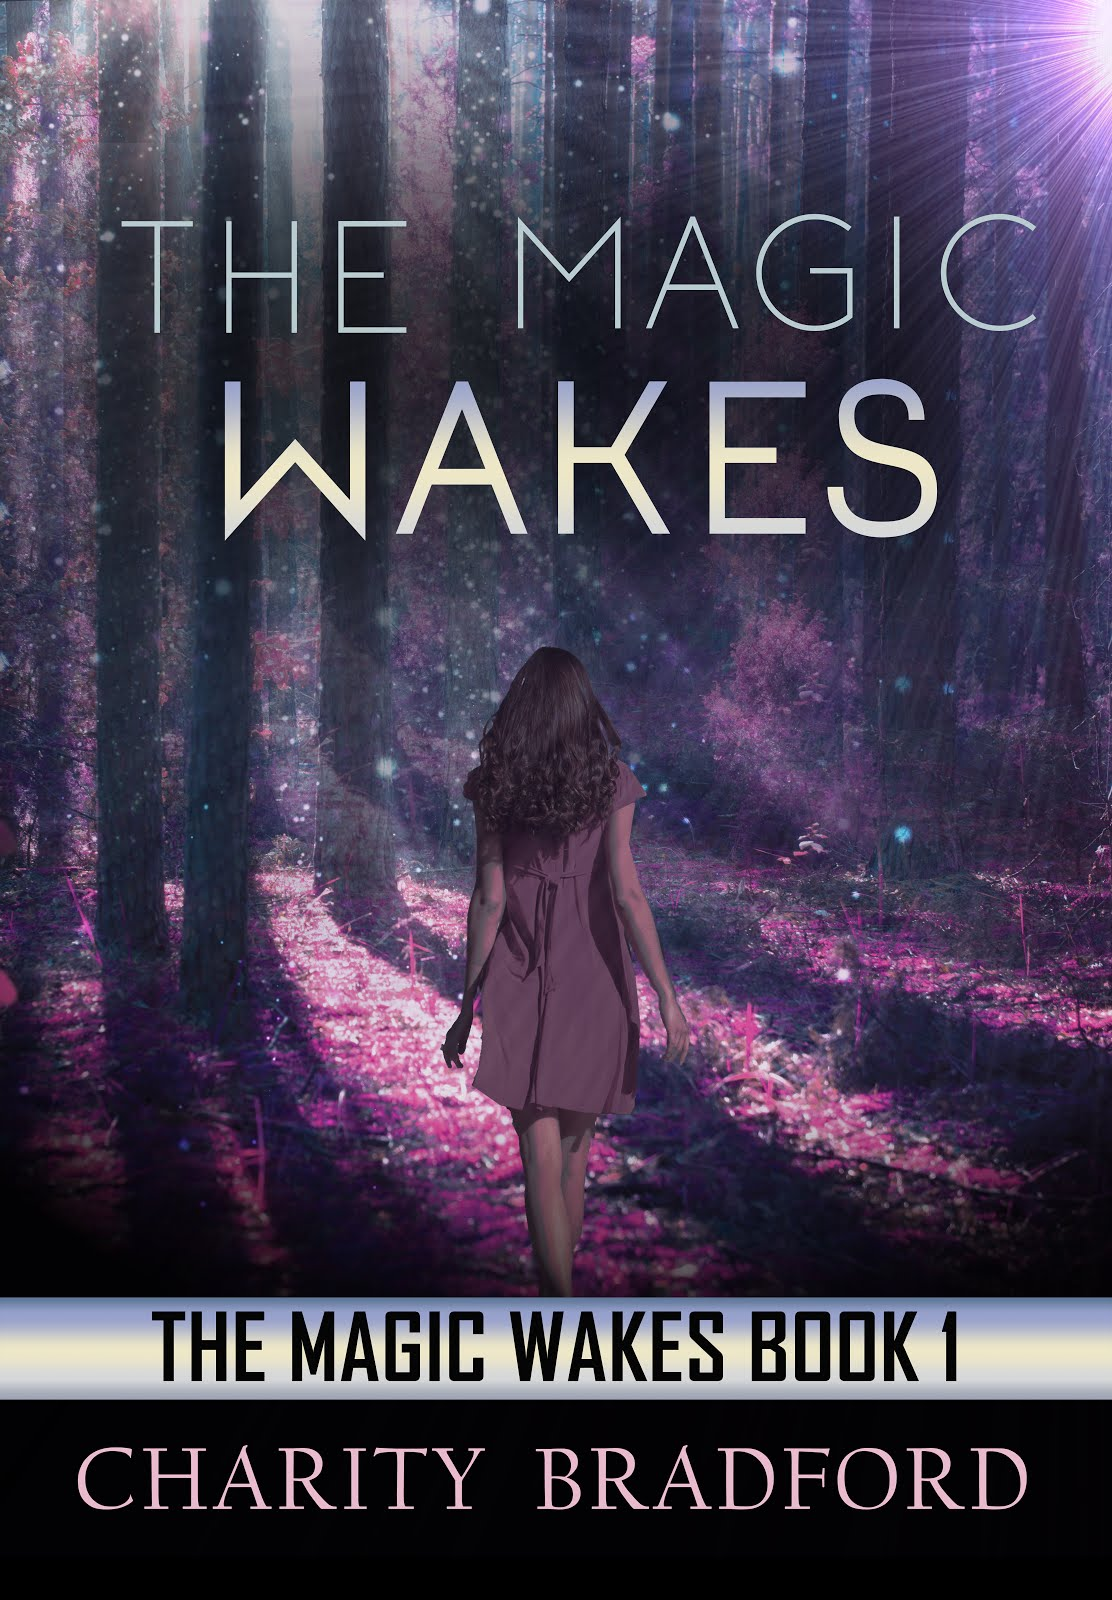 The Magic Wakes